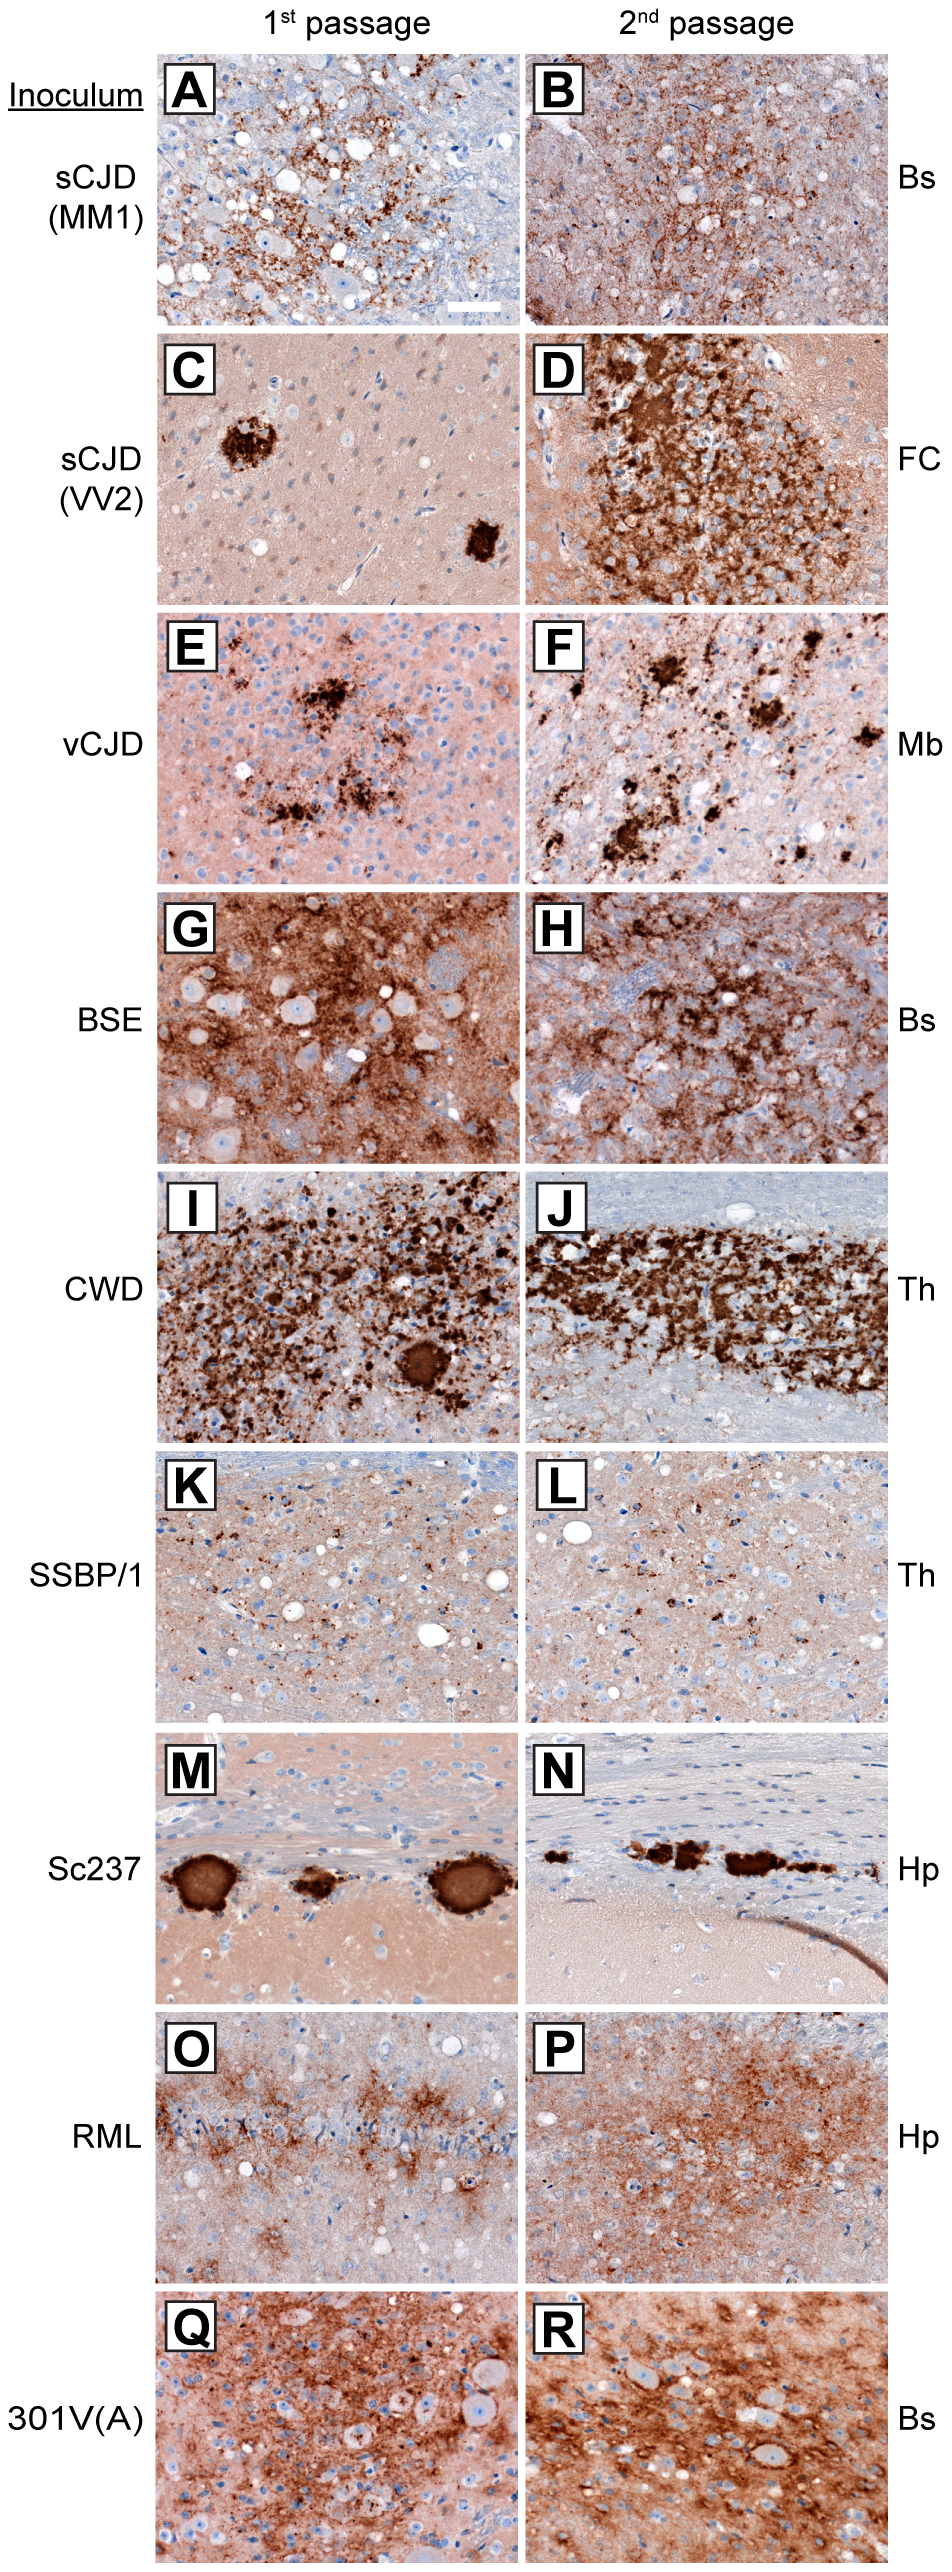 Patterns of cerebral PrP<sup>Sc</sup> deposition in Tg(M109) mice inoculated with diverse prion isolates.